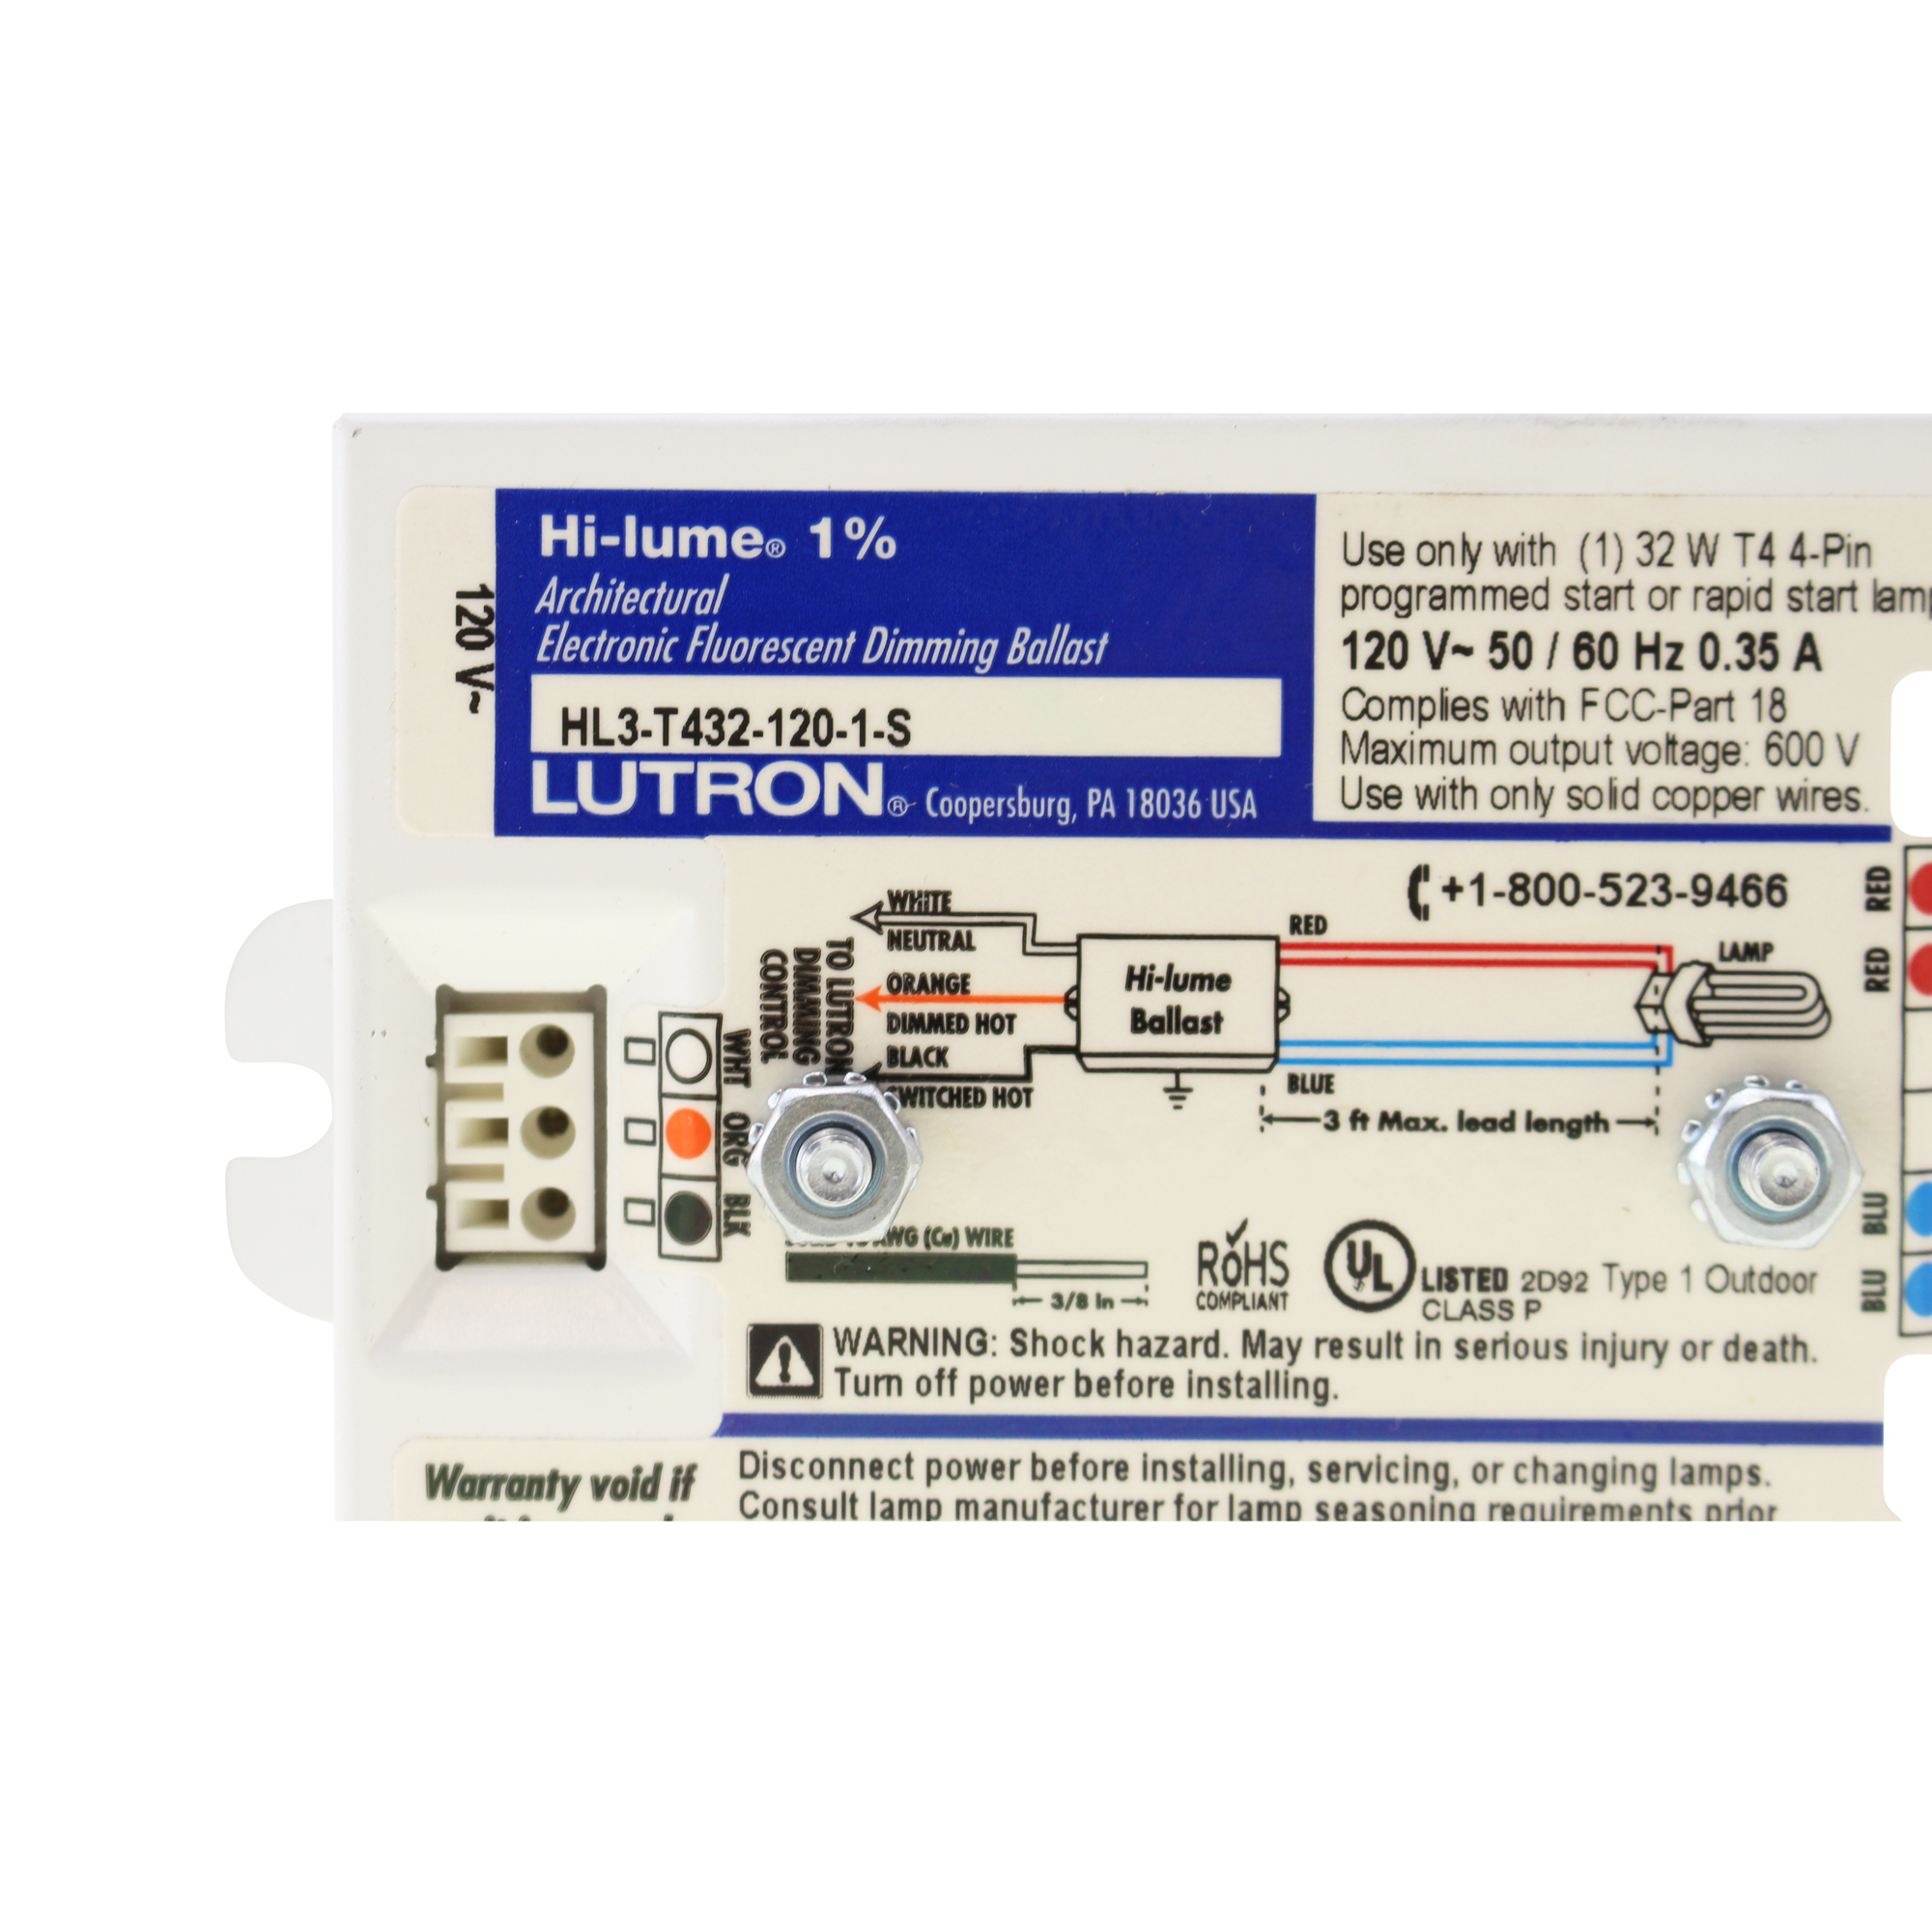 How To Wire Up A T5 Ballast Schematics Data Wiring Diagrams Electronic Dimming Diagram Lutron Hl3 T432 120 1 S Hi Lume Lamp Cfl 32w Ebay Light Fixture